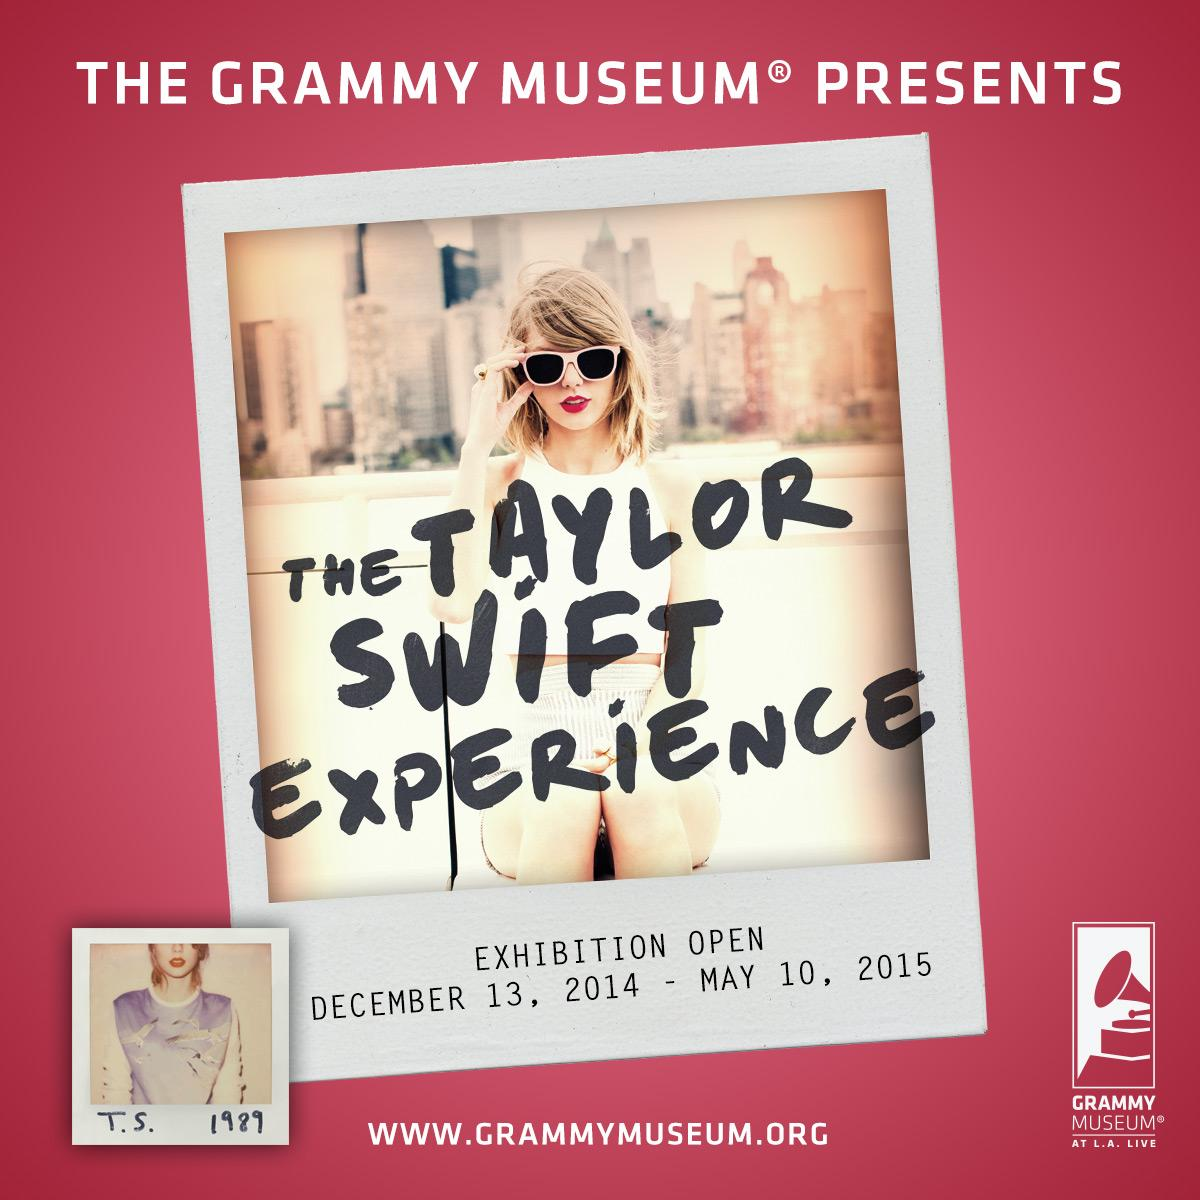 Just Announced!! The Taylor Swift Experience opens December 13! @taylorswift13 #TaylorSwiftEXP http://t.co/ABVTIH5zfF http://t.co/x0GXh0MYWb